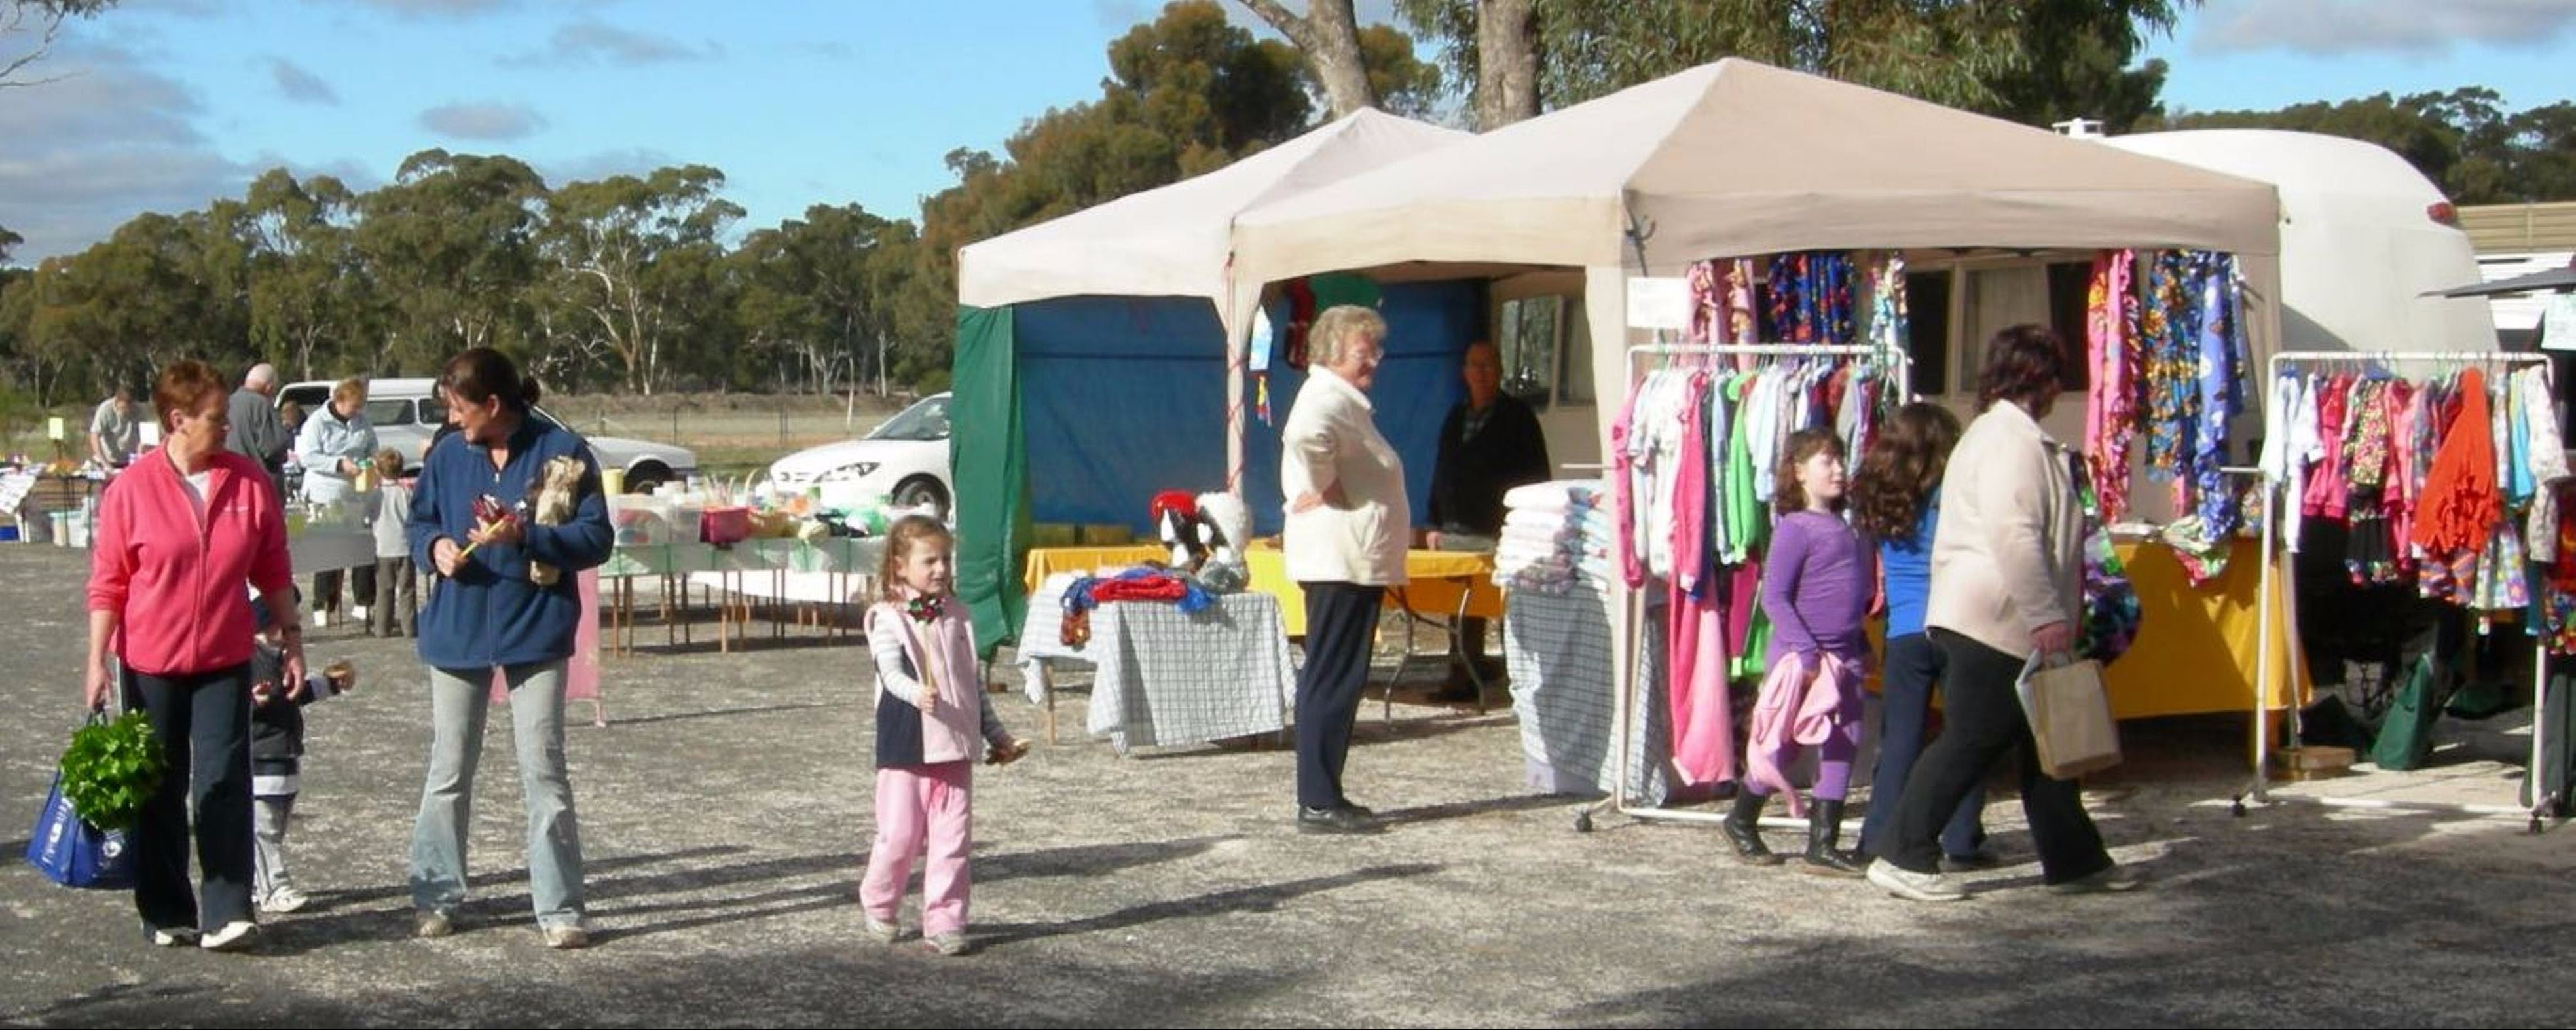 Haven Market - ACT Tourism